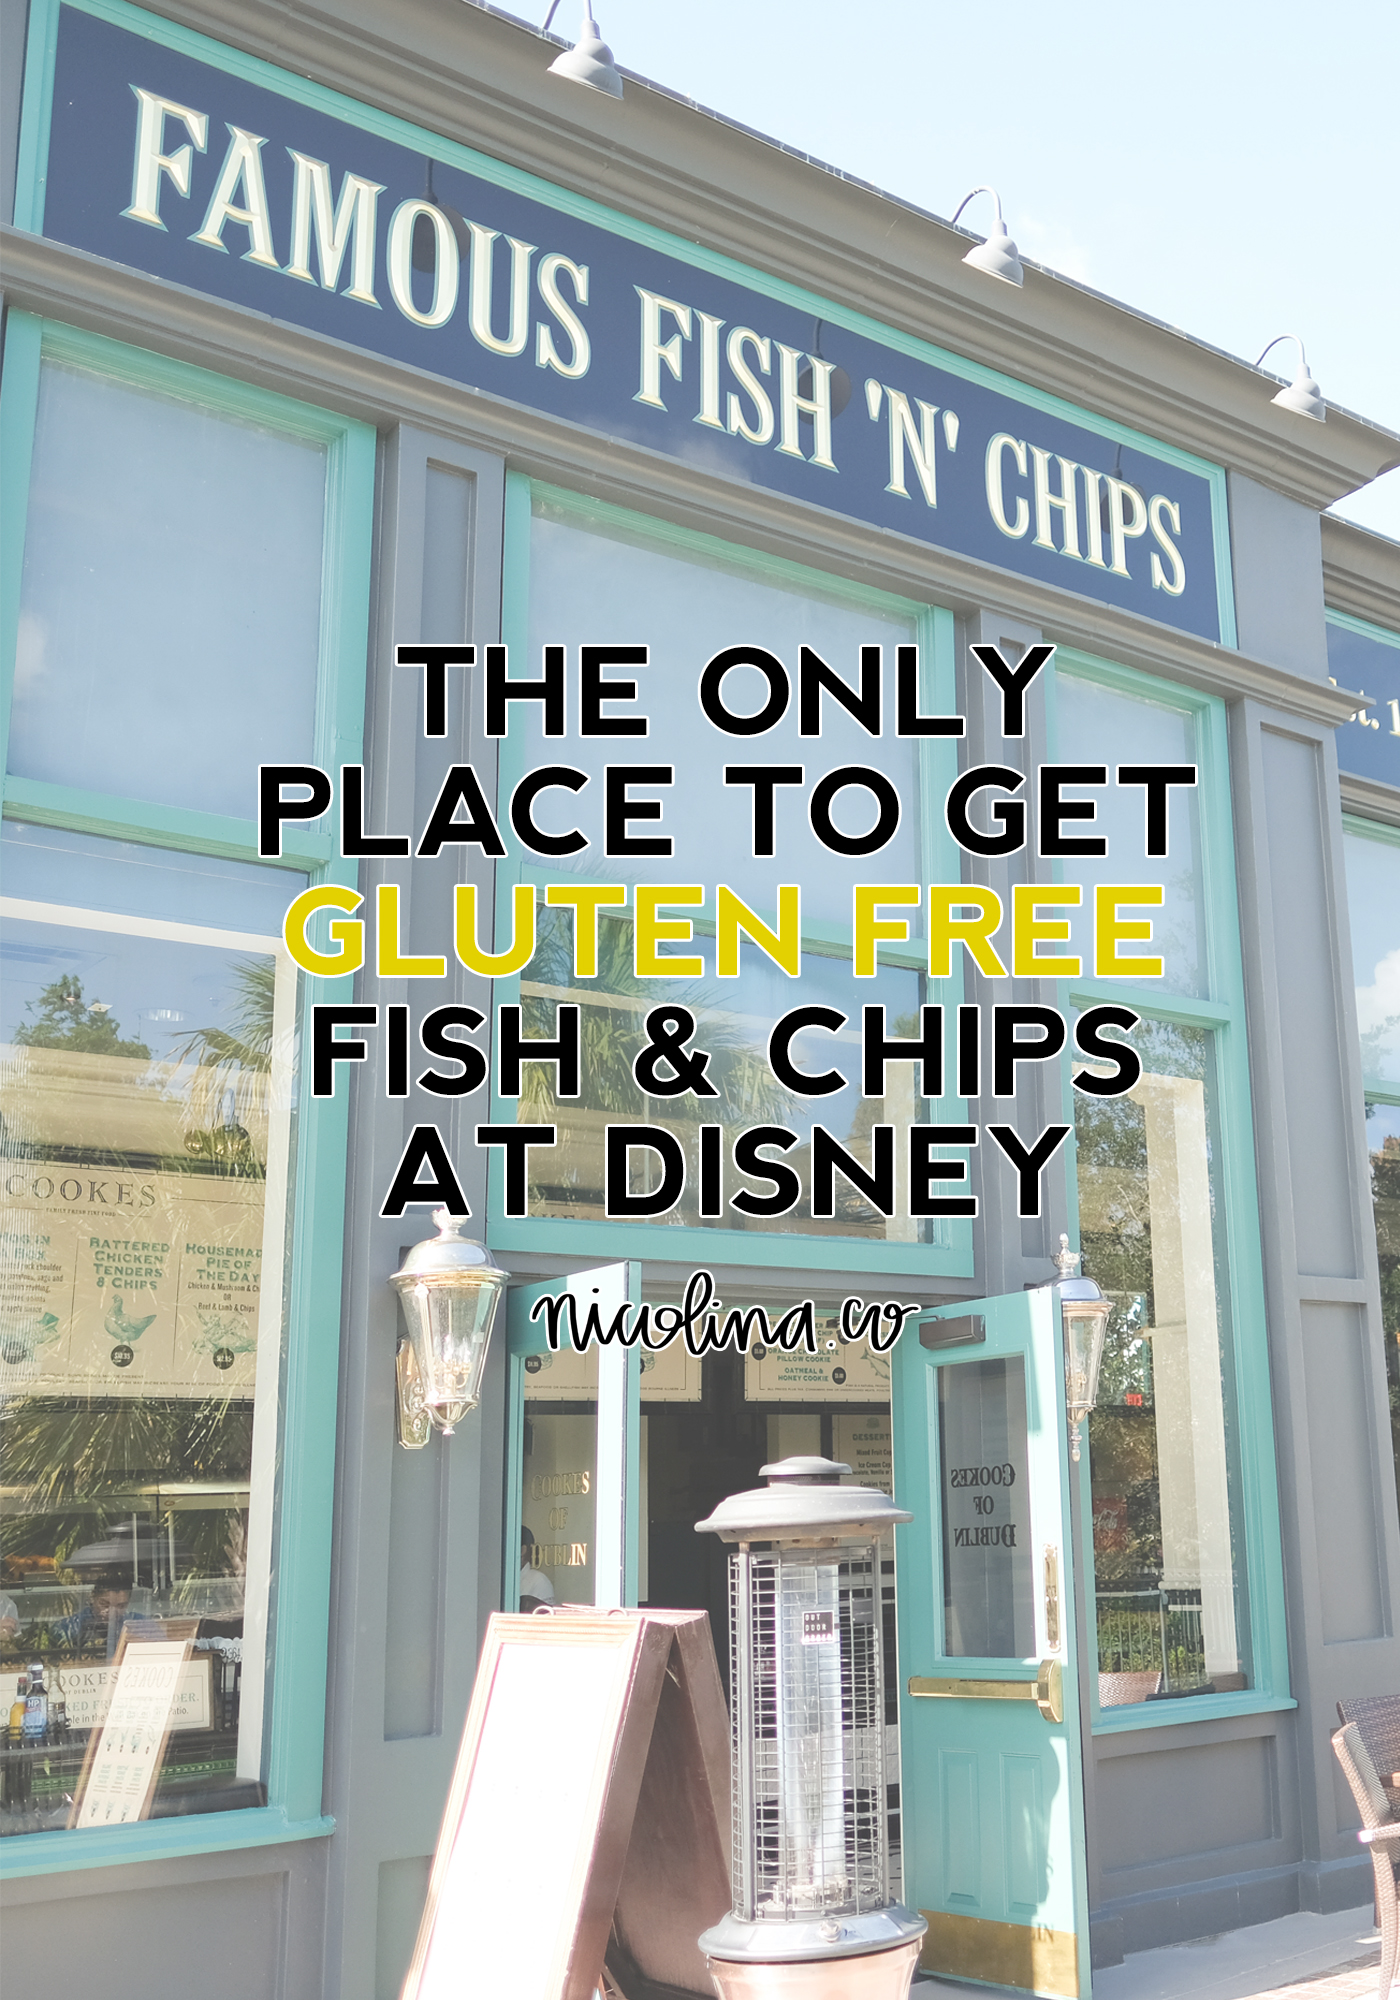 The Only Place to Get Gluten Free Fish and Chips at Disney